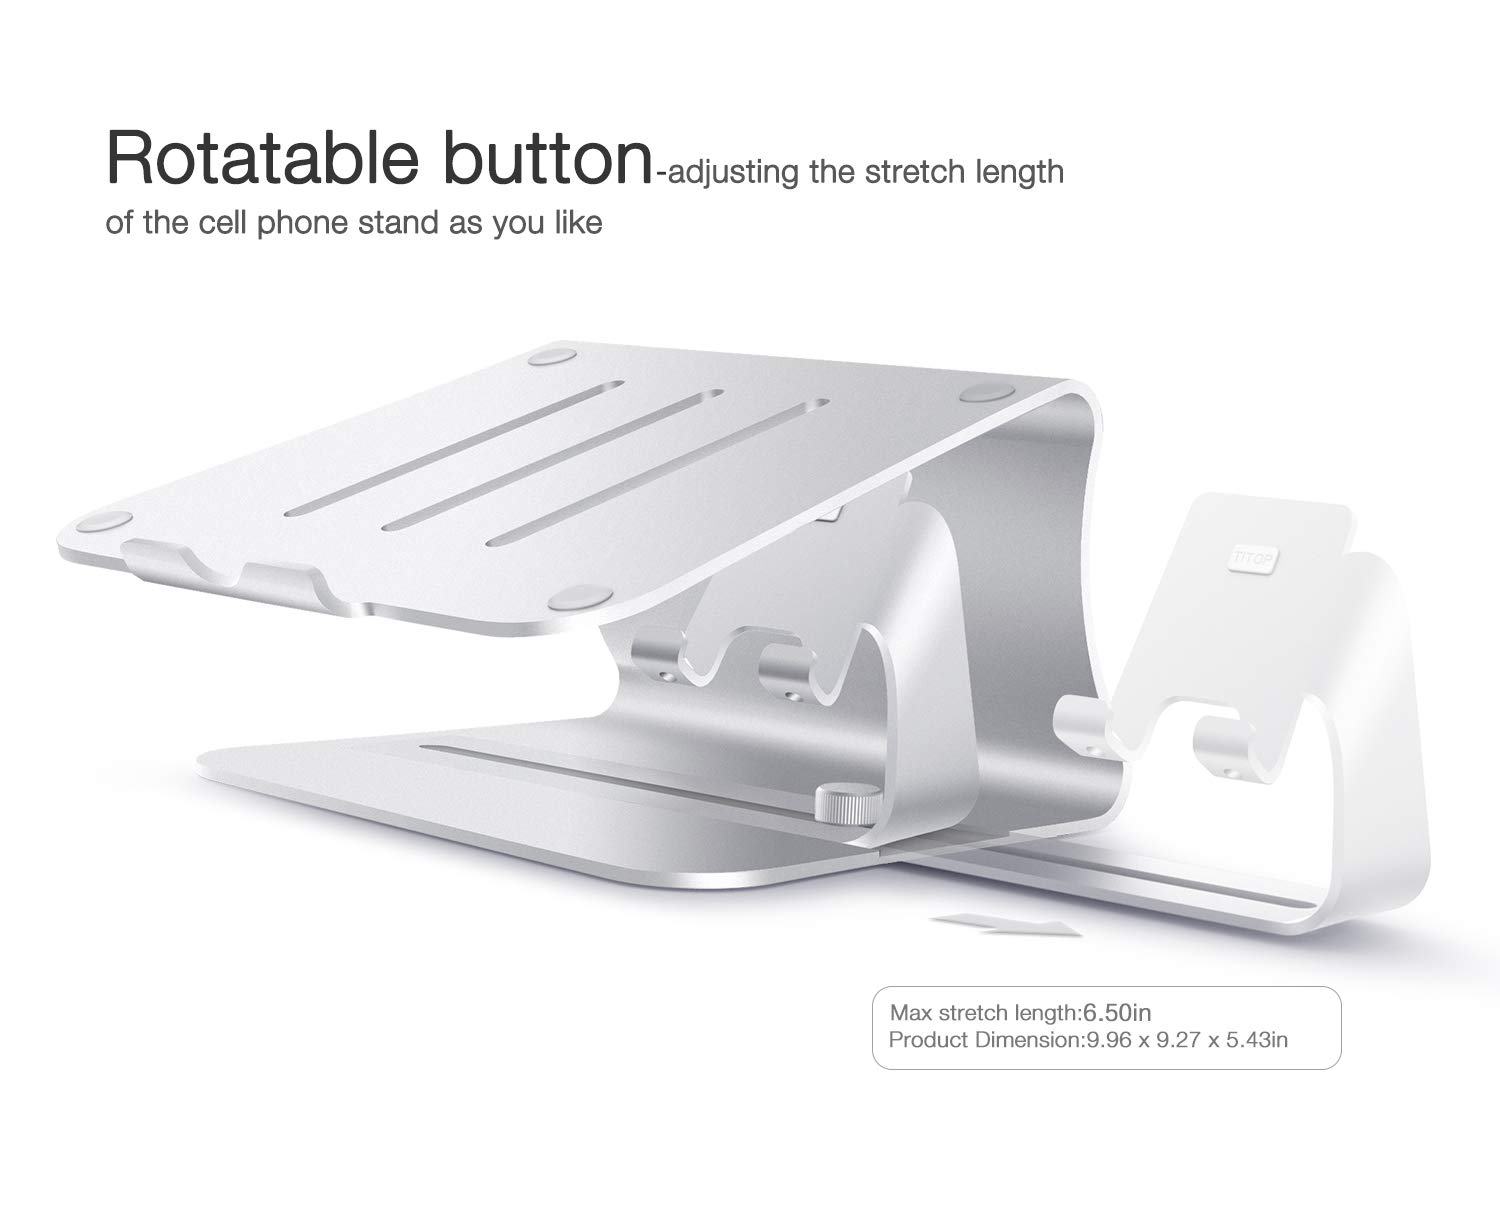 2 in 1 Laptop and Phone Stand - Bestand Aluminum Cooling Computer Stand: [UPDATE VERSION] Stand, Holder for Apple Macbook Air, Macbook Pro, All Notebooks, iPhone Series, Silver (Patented) by Bestand (Image #8)